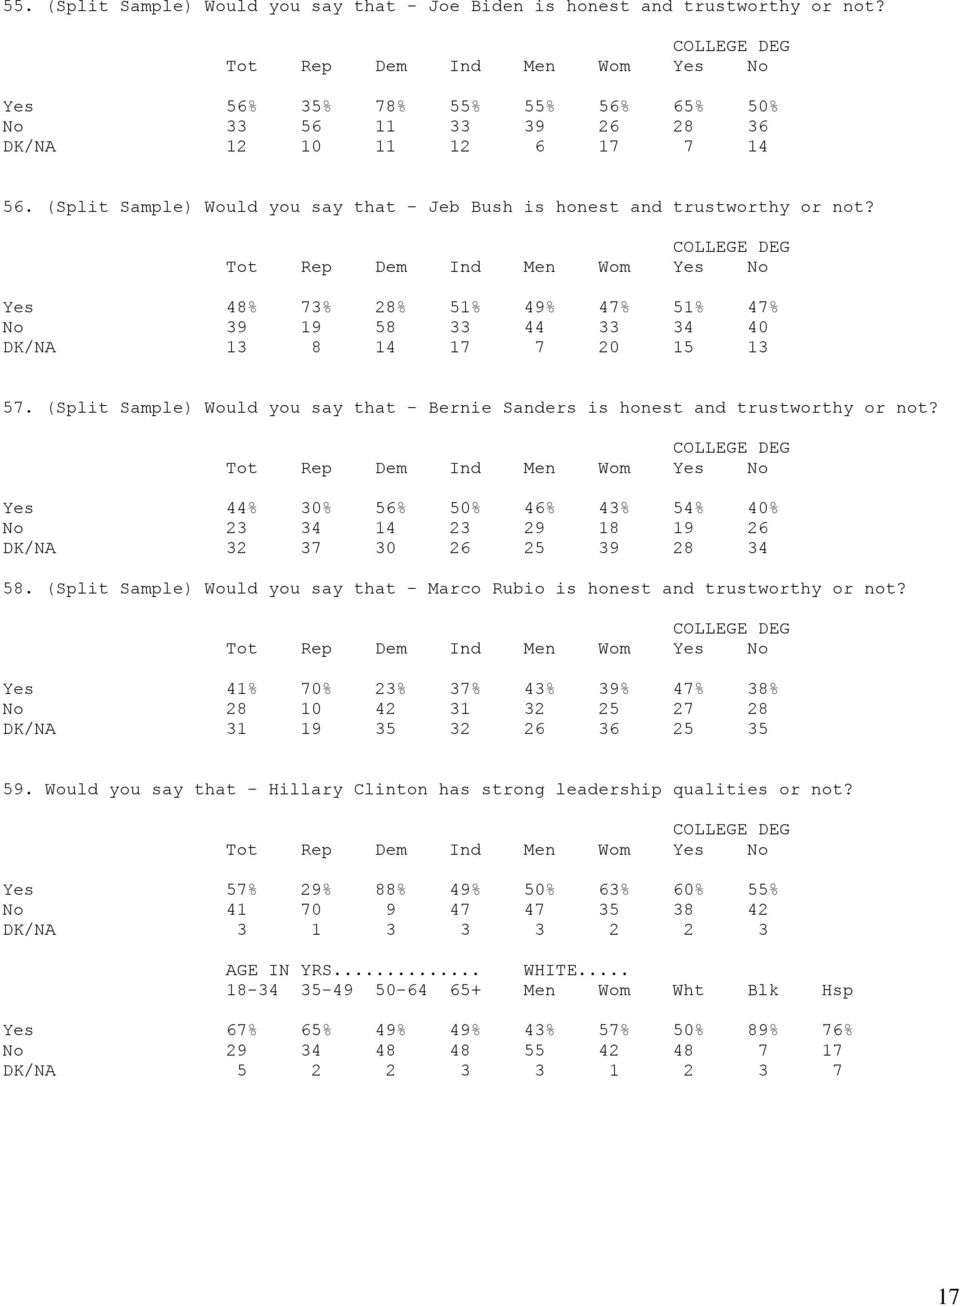 (Split Sample) Would you say that - Bernie Sanders is honest and trustworthy or not? Yes 44% 30% 56% 50% 46% 43% 54% 40% No 23 34 14 23 29 18 19 26 DK/NA 32 37 30 26 25 39 28 34 58.